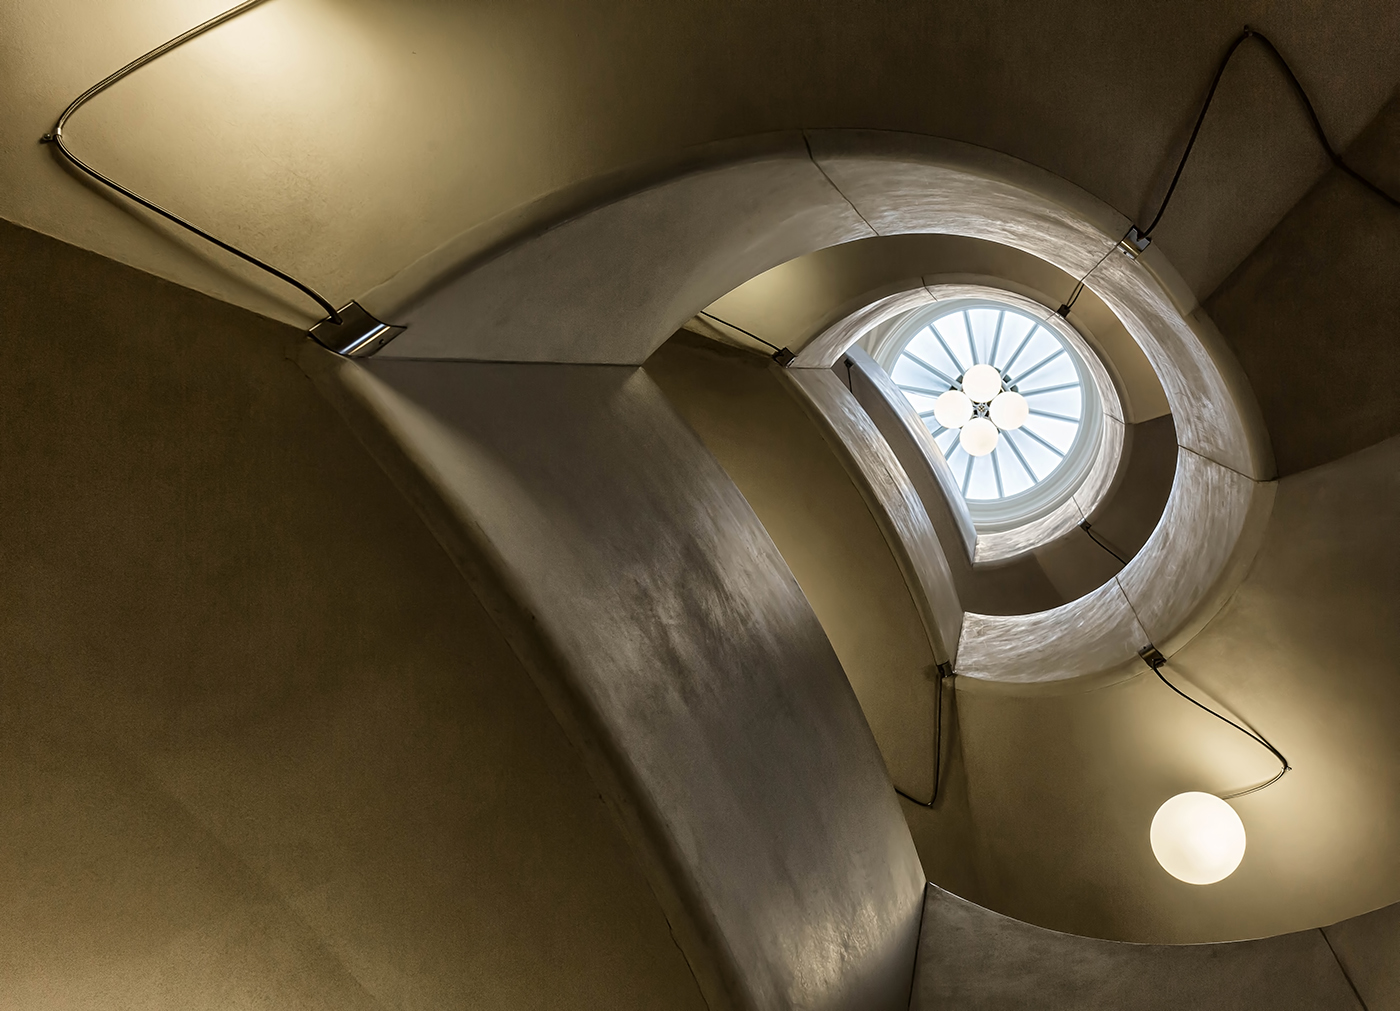 Staircase at Tate Britain by Vera Stevens